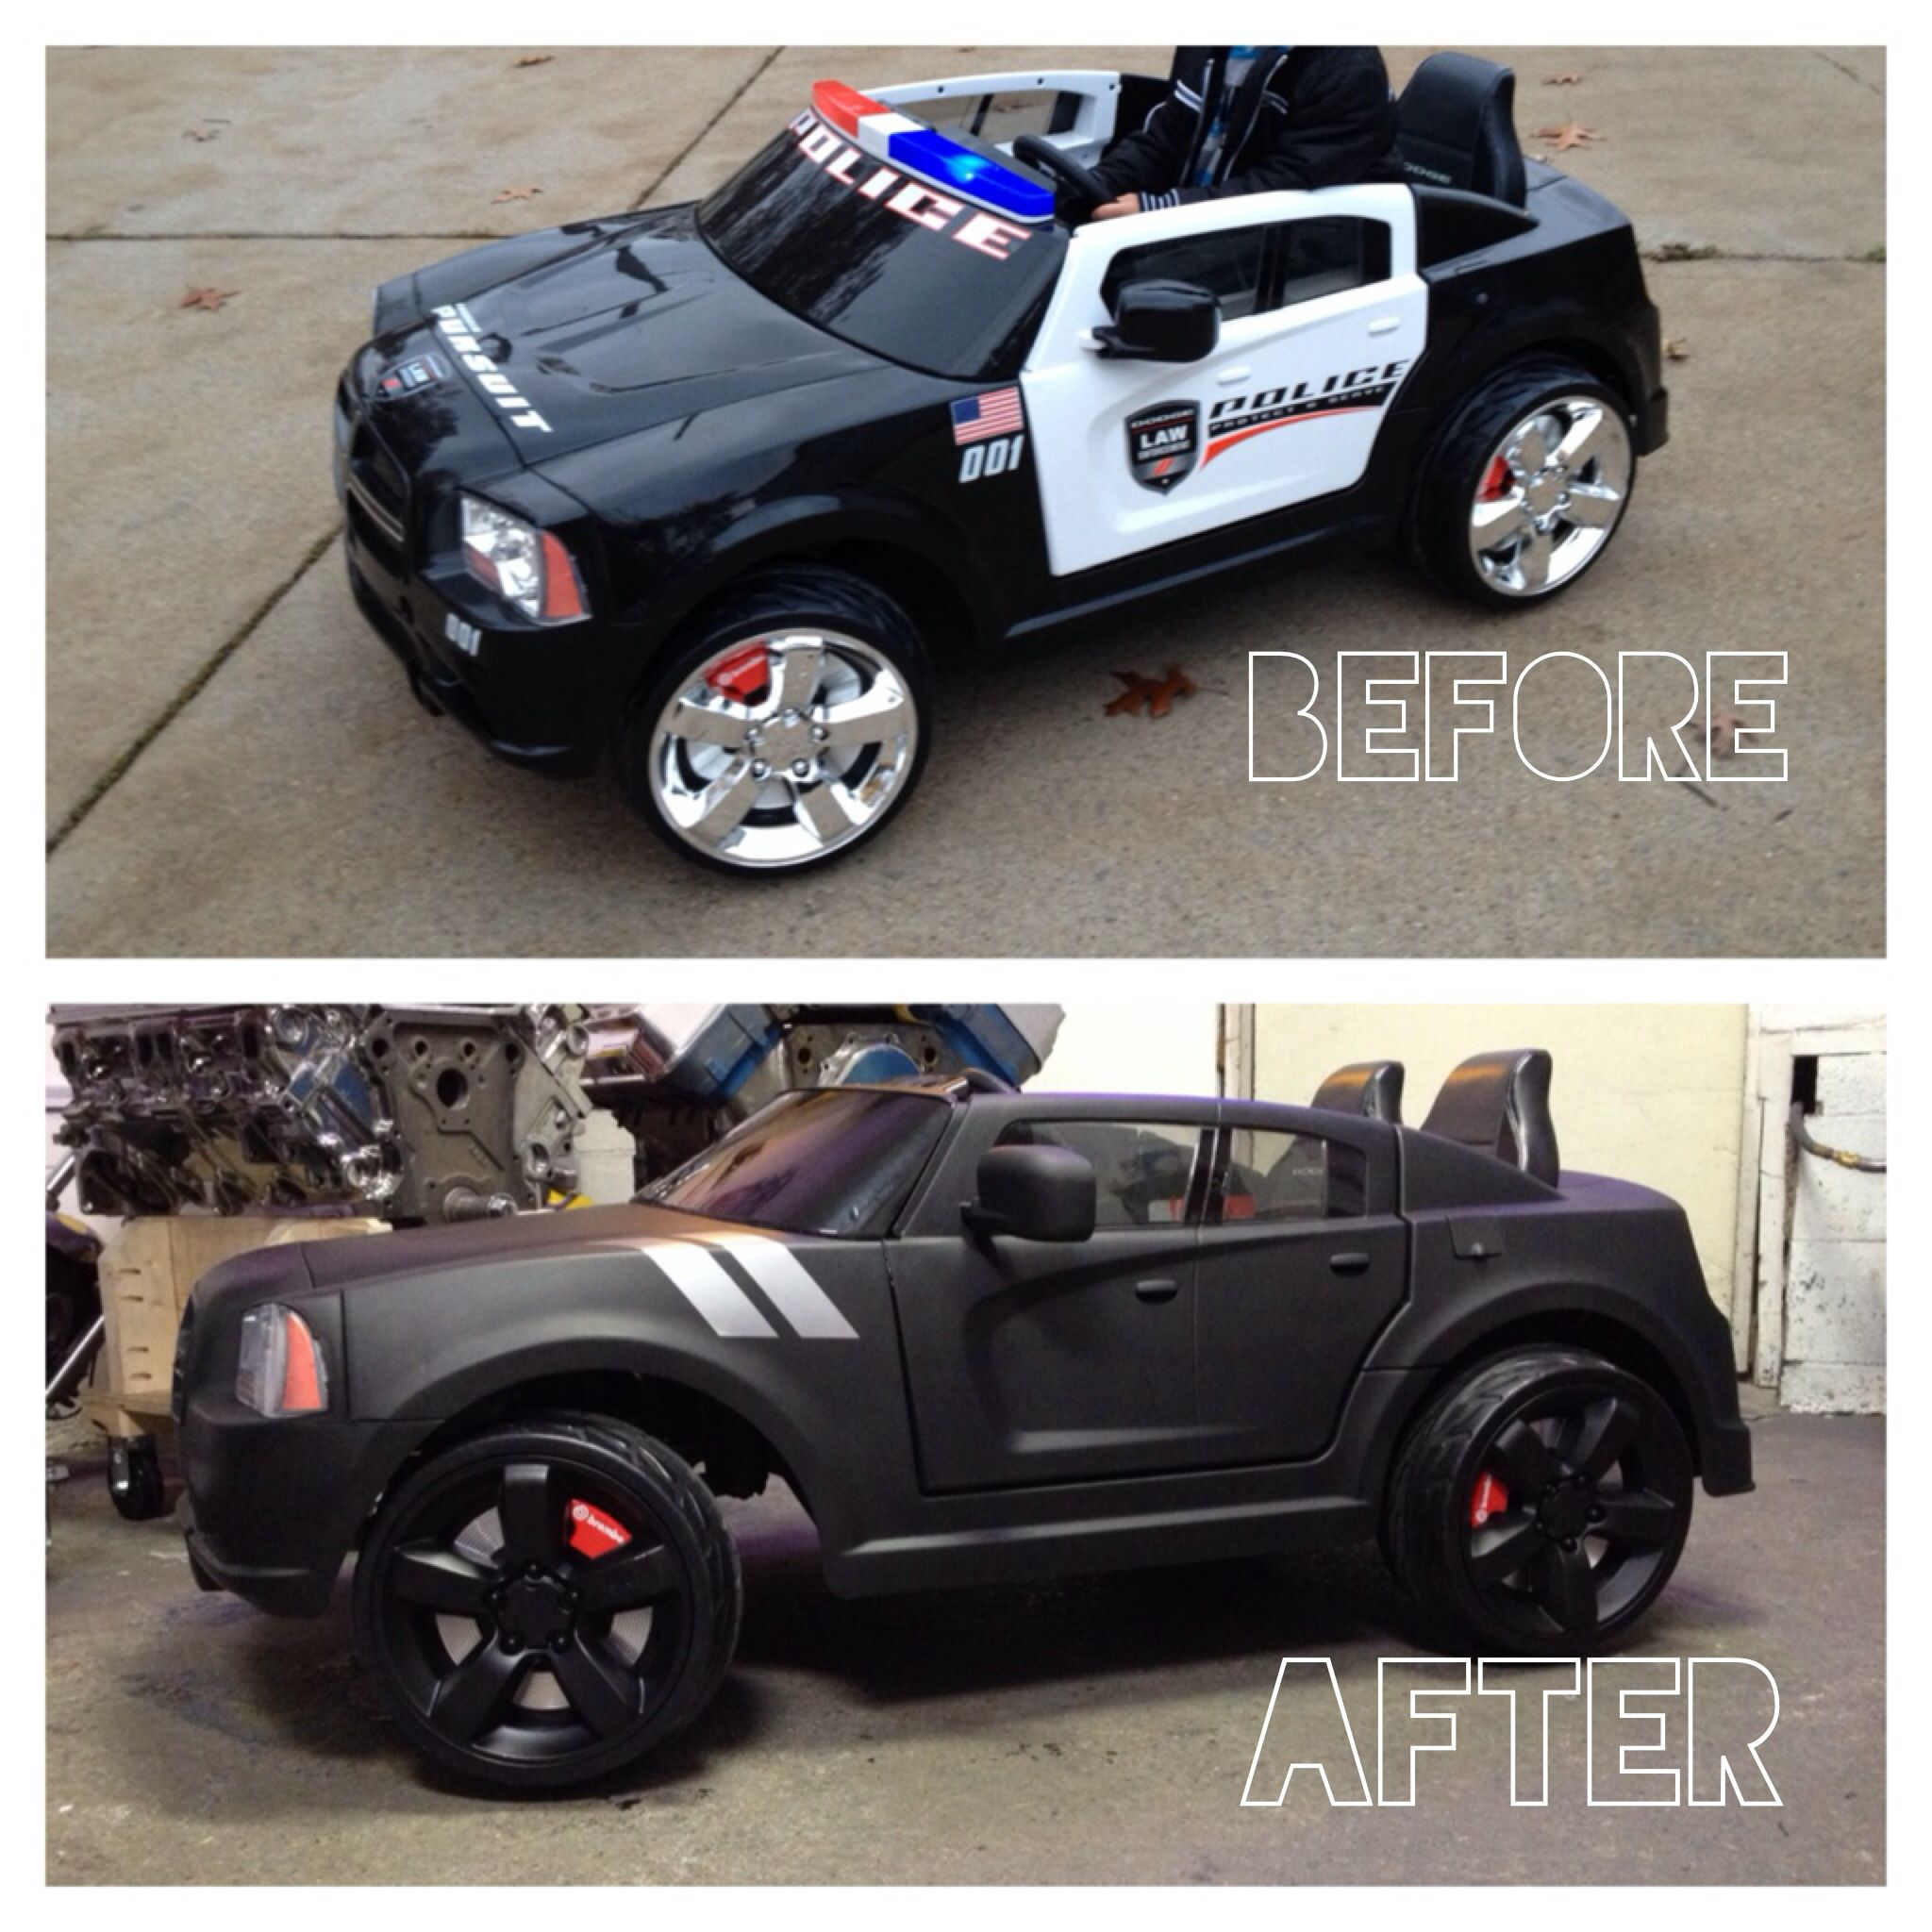 Overhauled my sons Powerwheels Dodge Charger police car into an